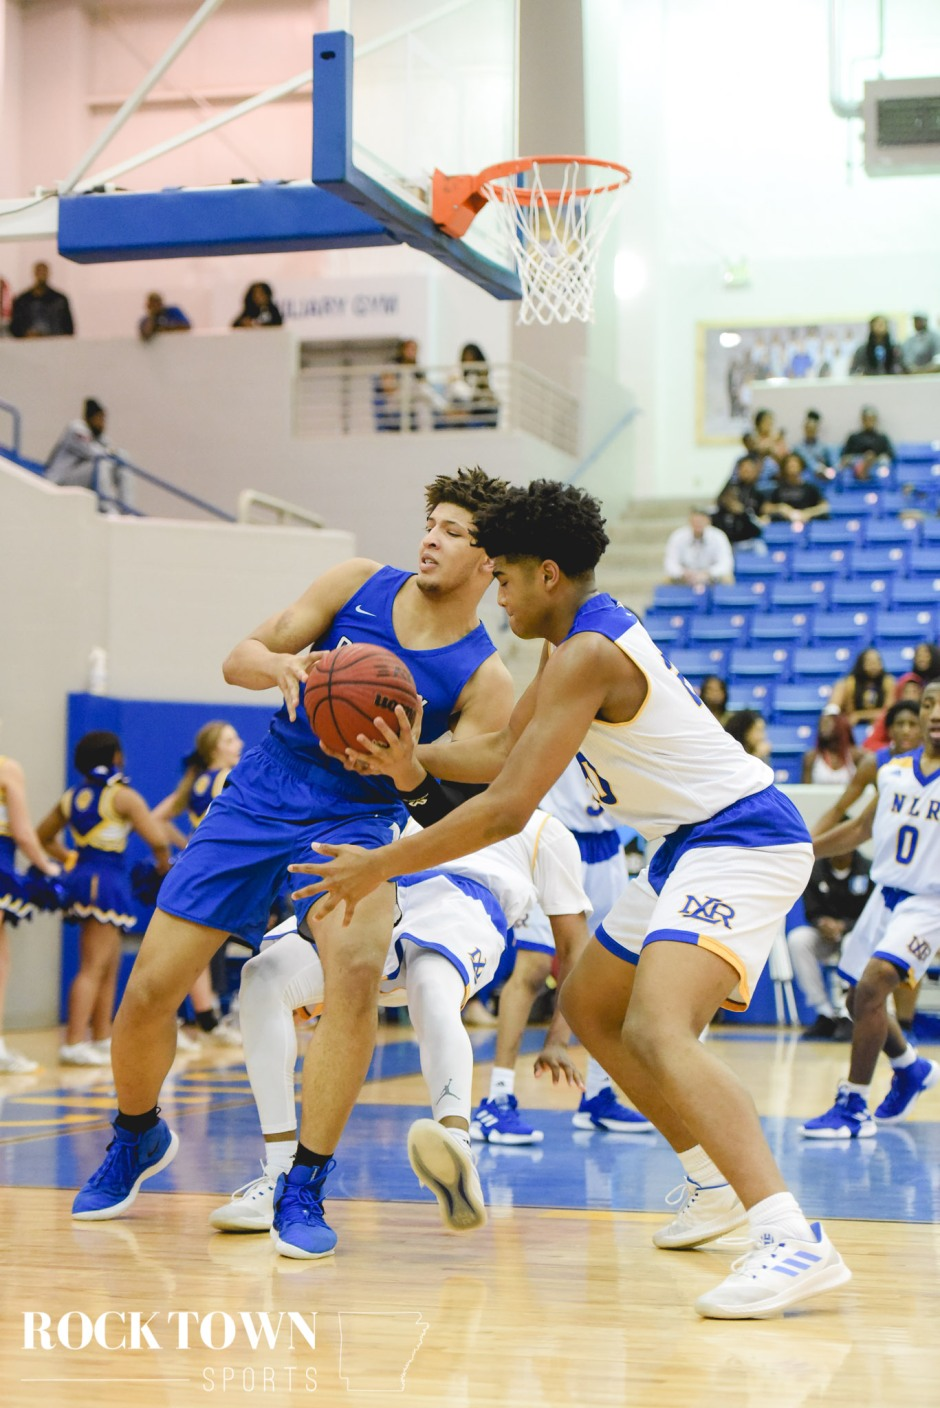 Conway_NLR_bball19(i)-68